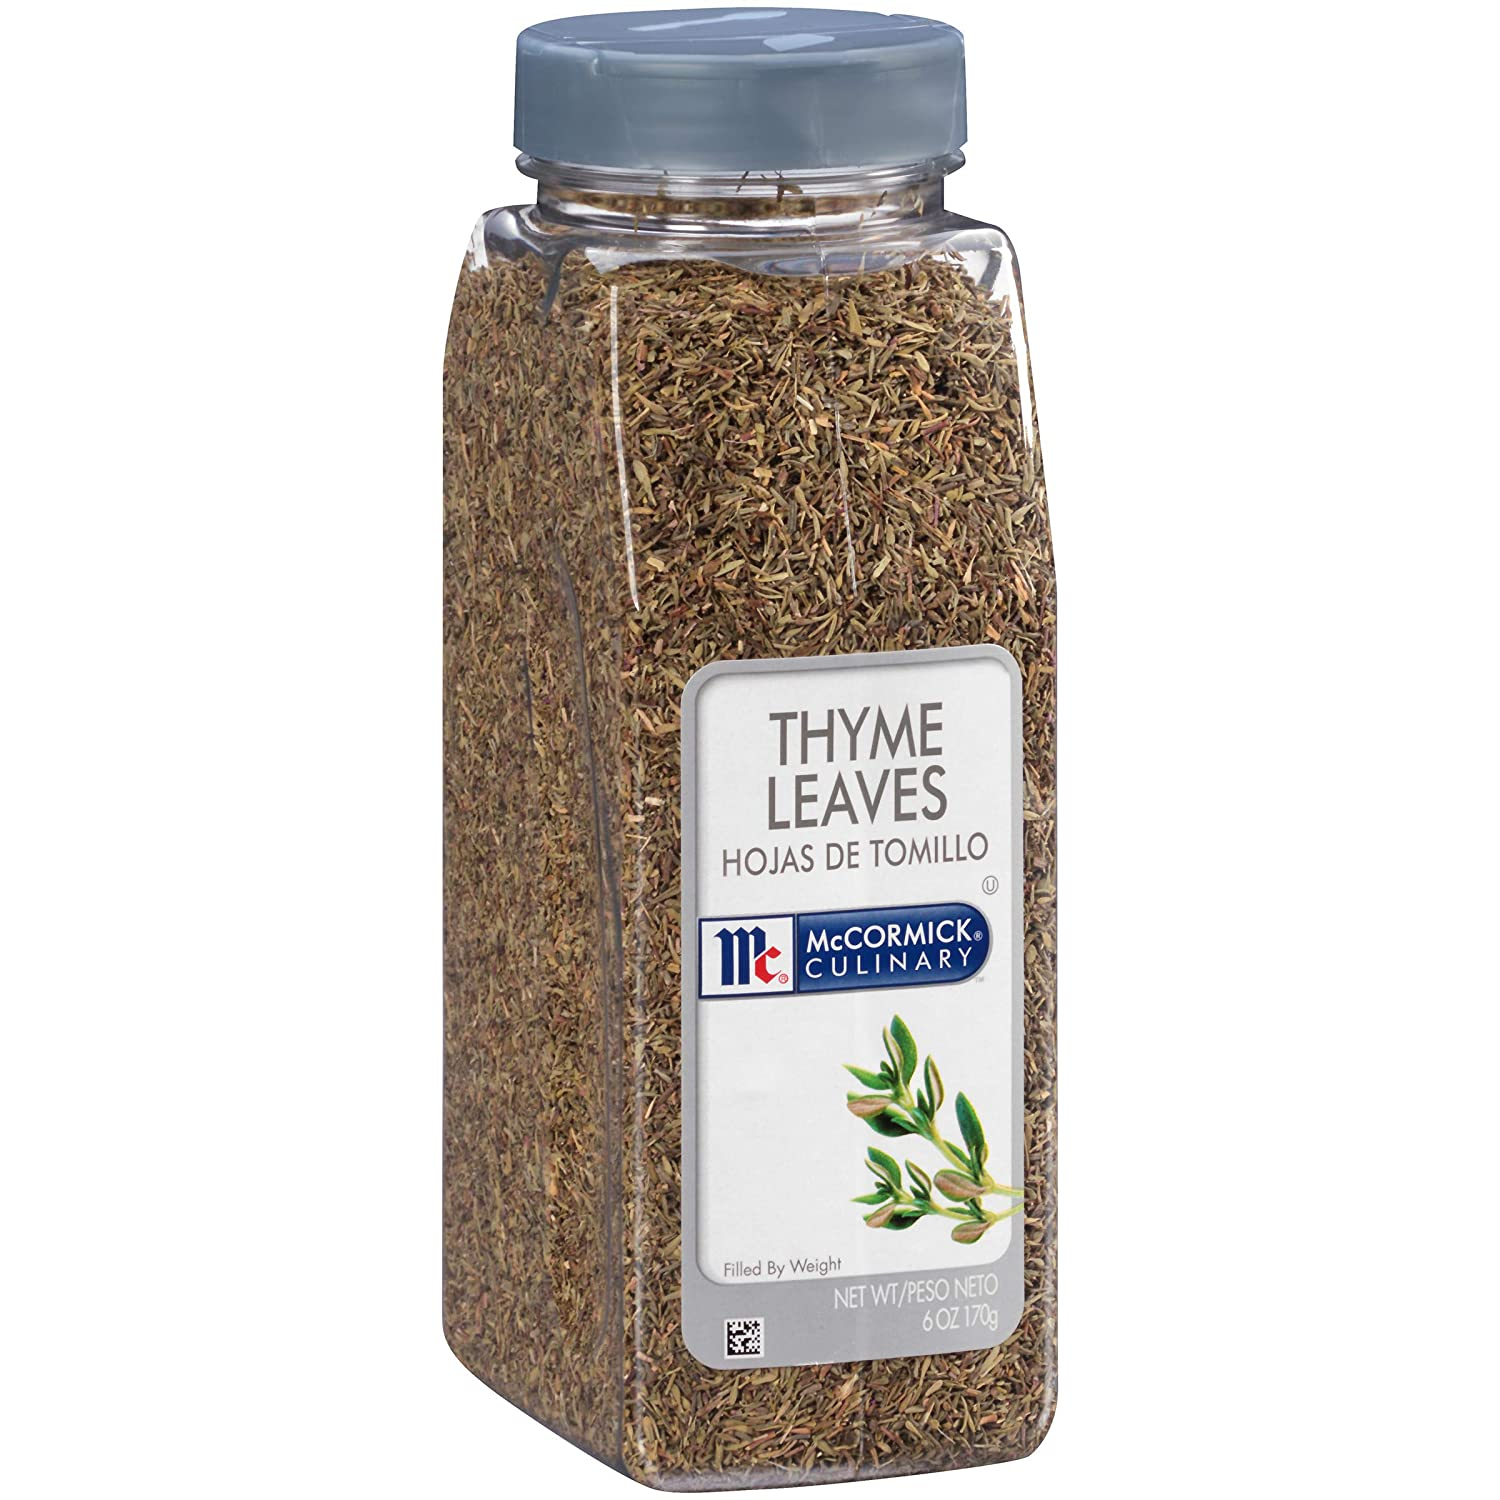 McCormick Culinary Thyme Leaves